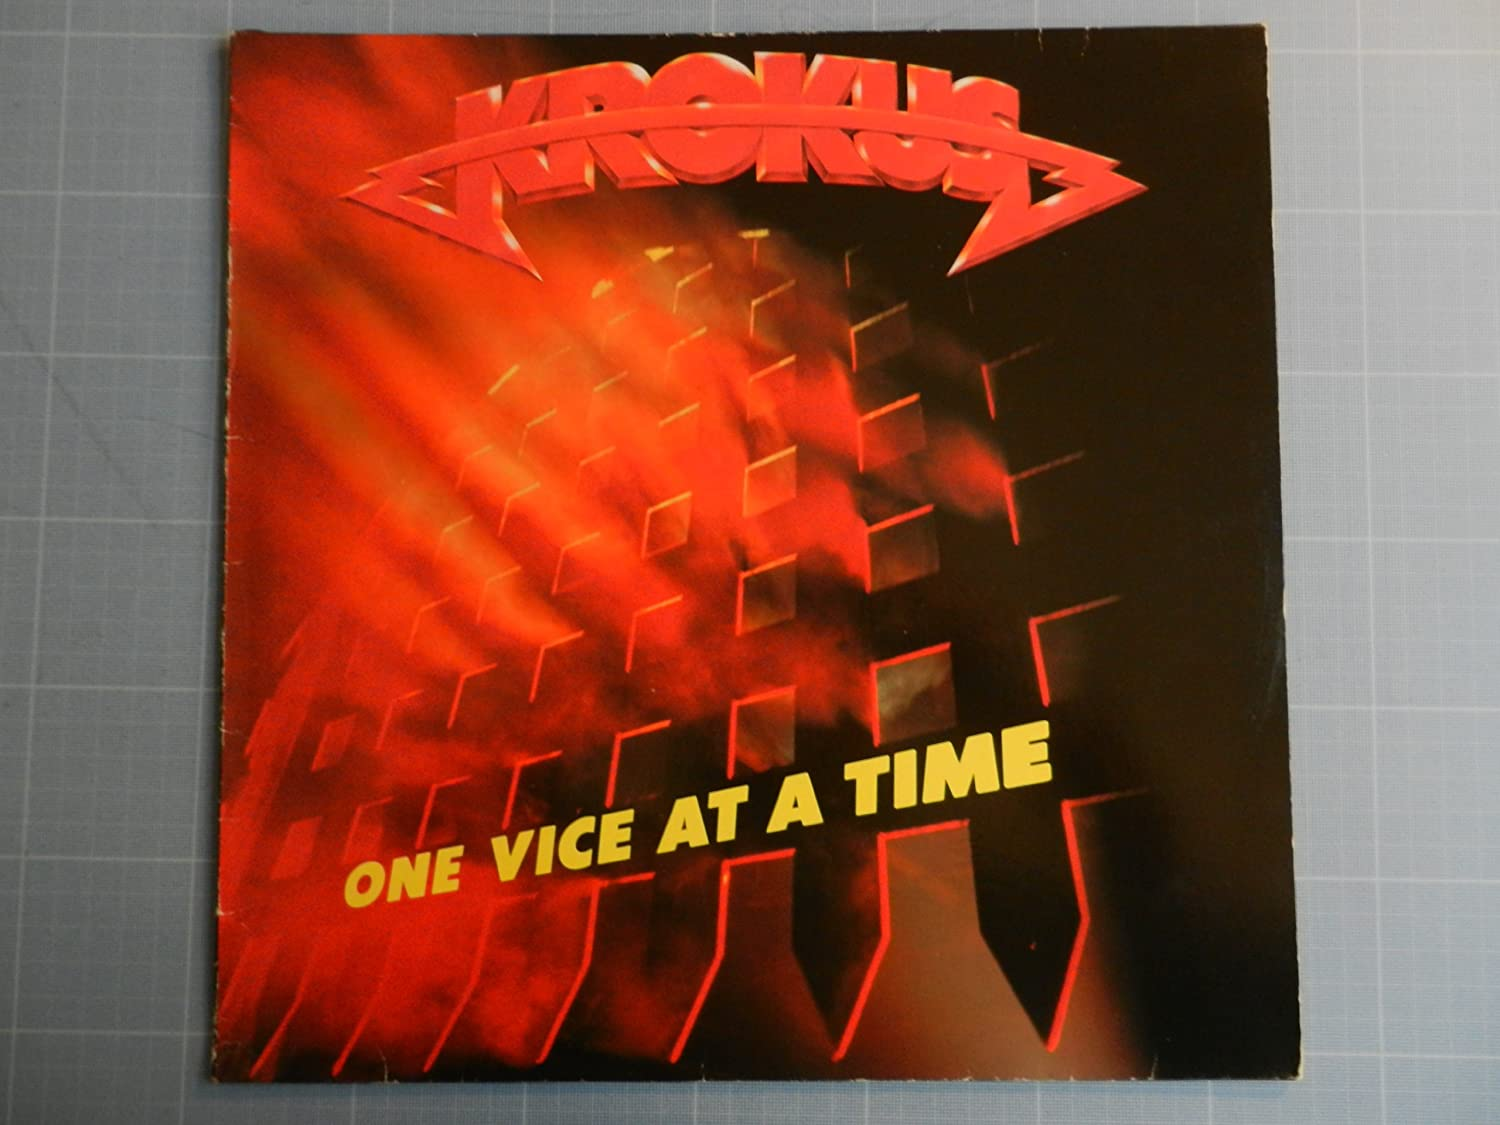 One Vice at a Time [12 inch Analog]                                                                                                                                                                                                                                                    <span class=